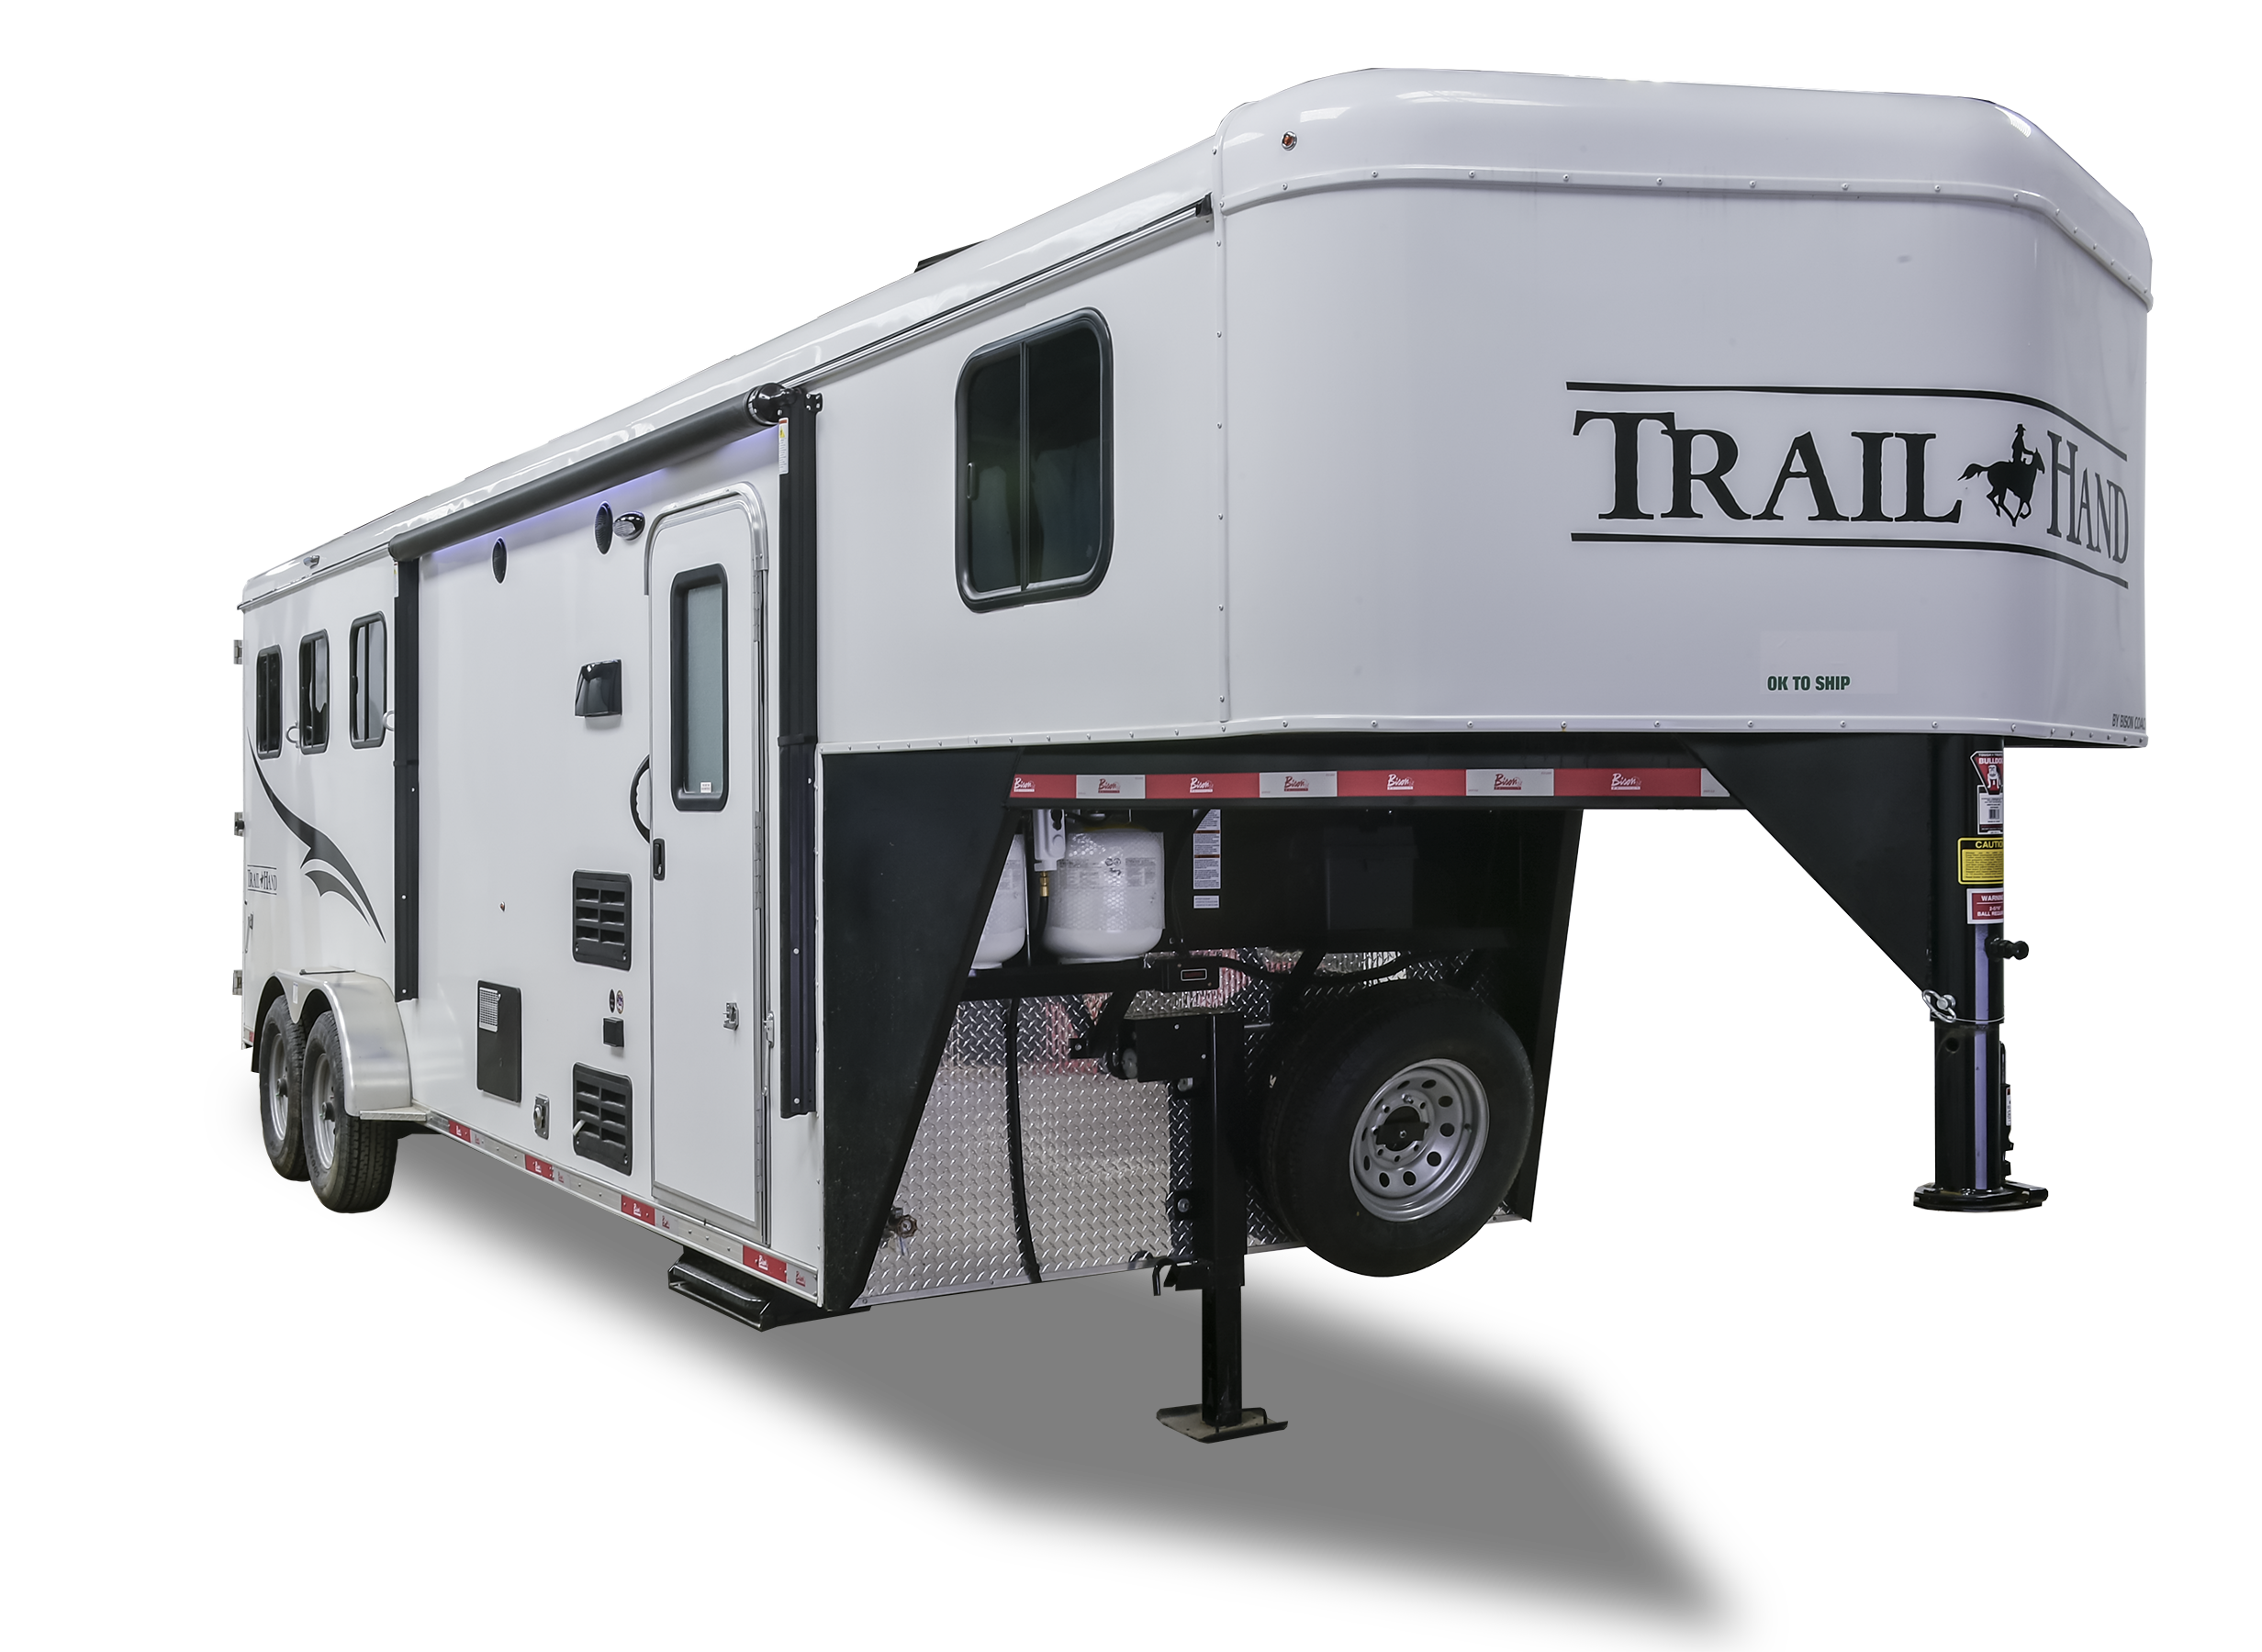 horse aluminum living img hart outlaw awning quarters awnings all listing the trailer with